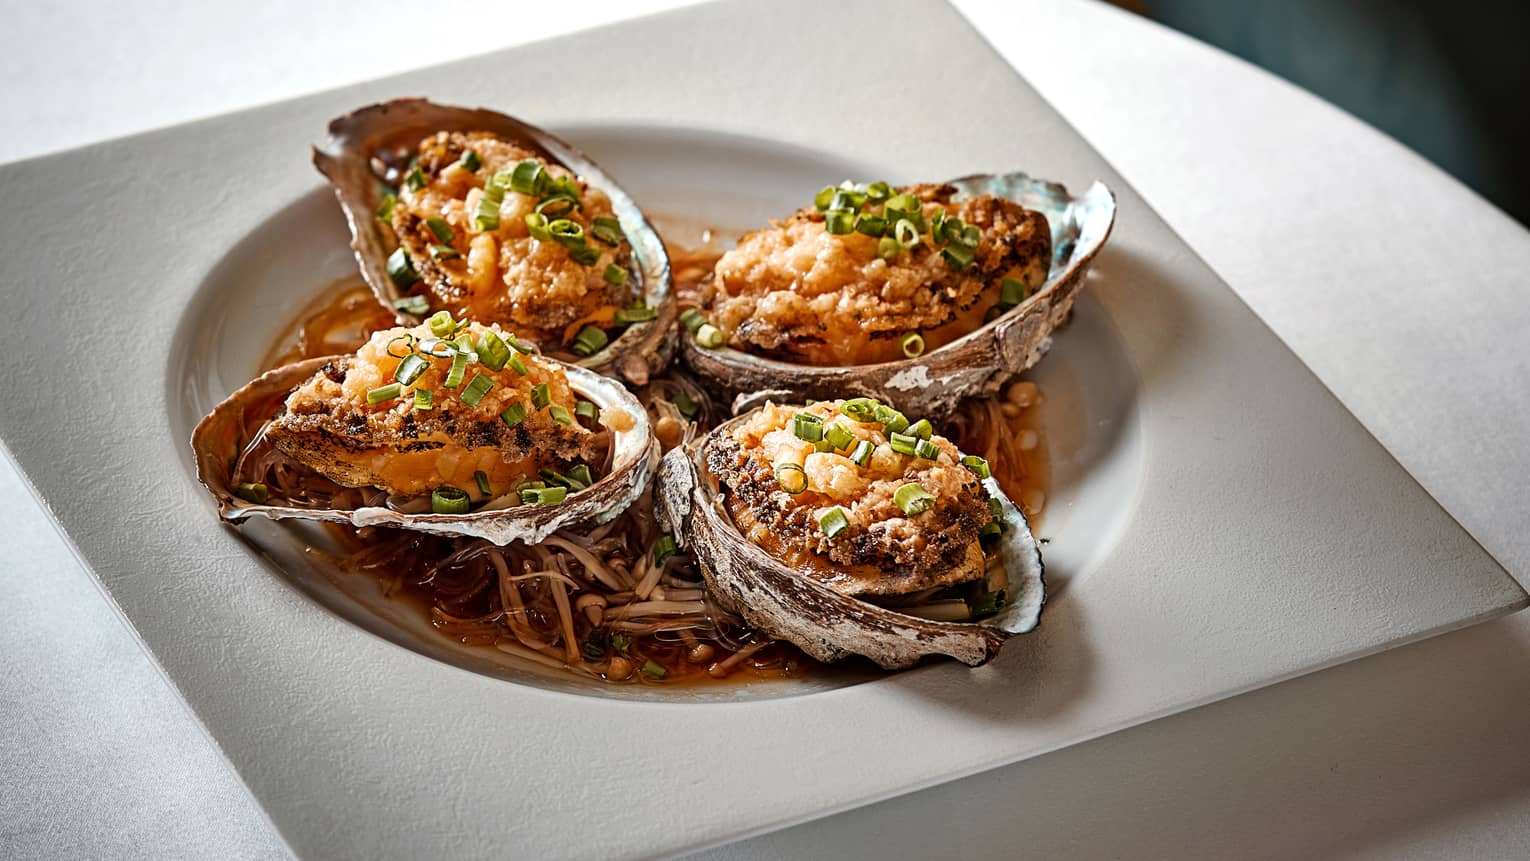 Four oyster shells with Steamed Live Abalone in bowl with sauce